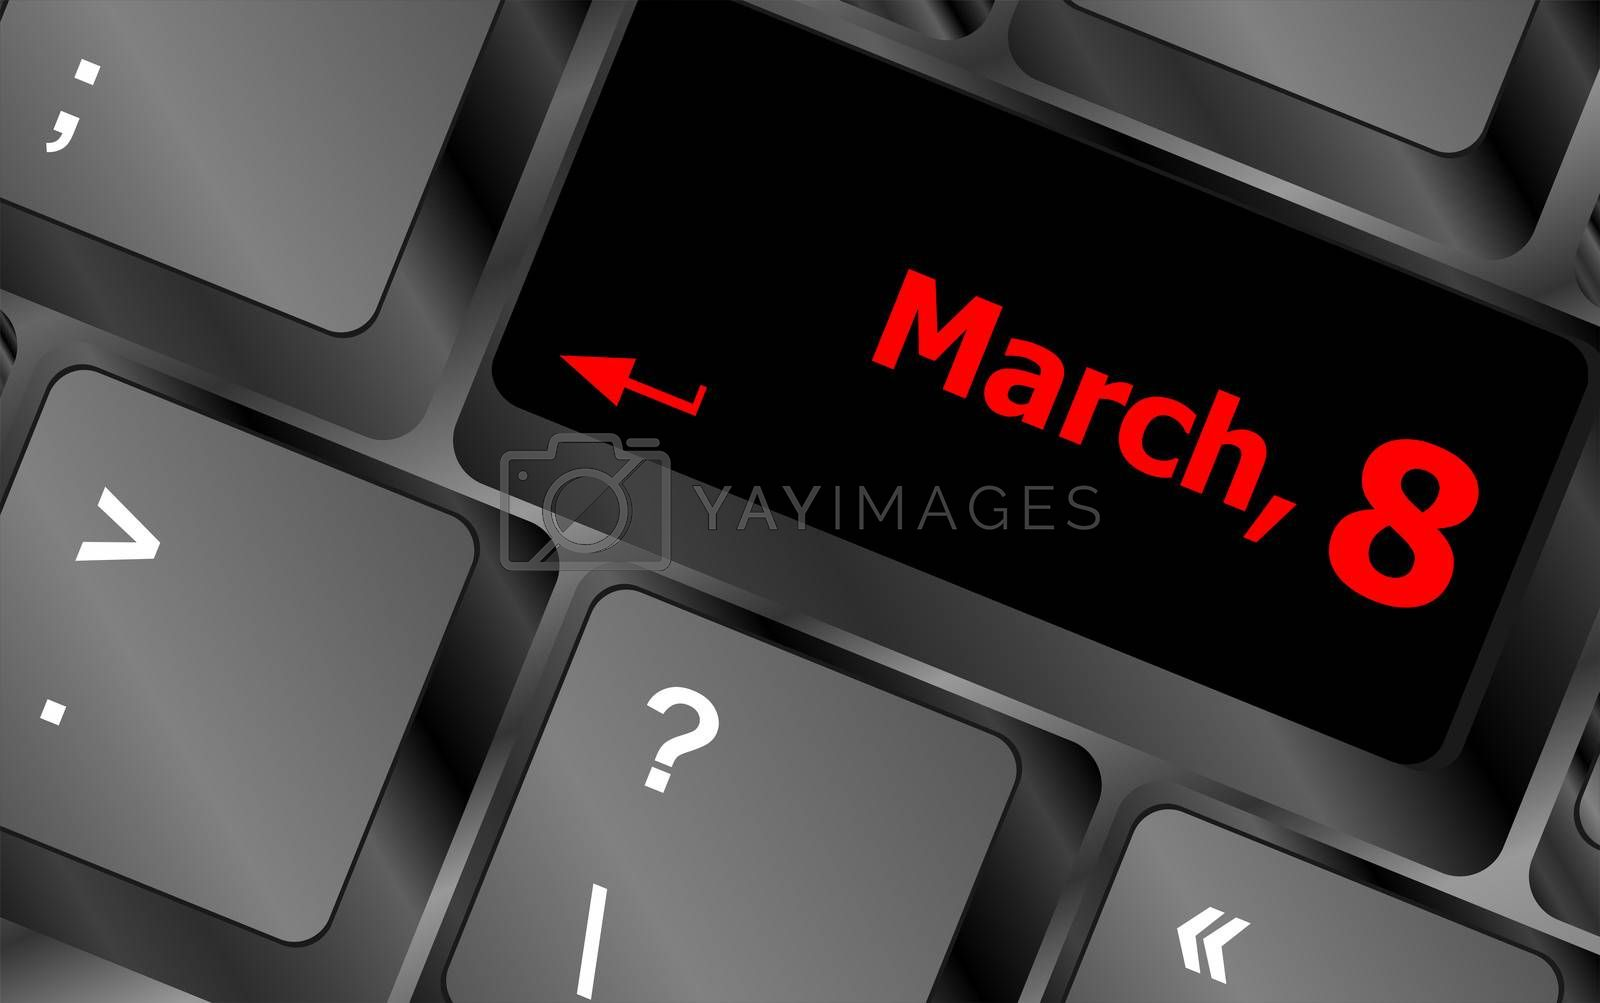 Computer keyboard key - March, 8